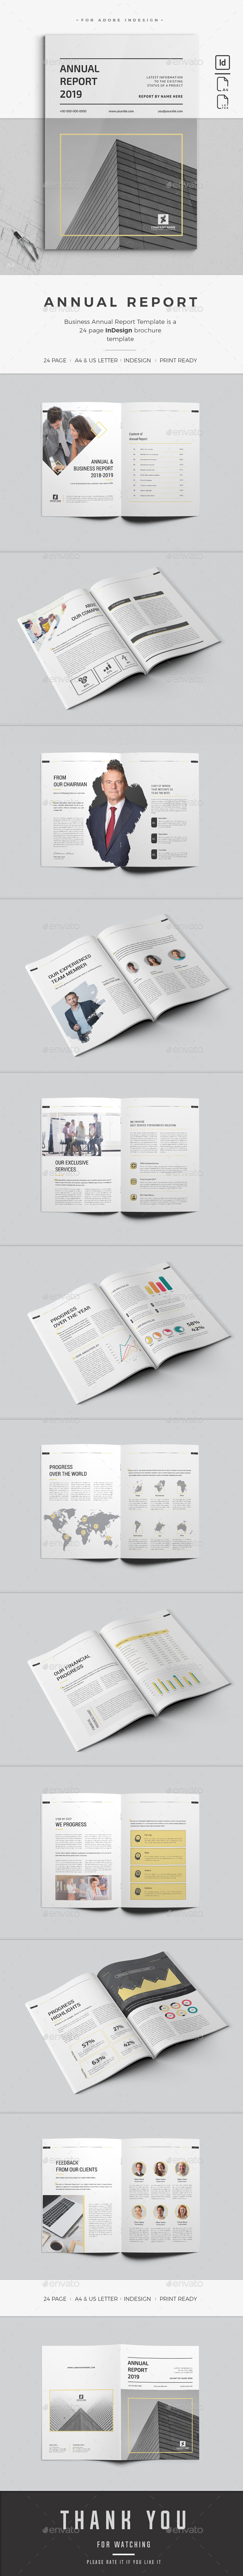 GraphicRiver Annual Report 21122469